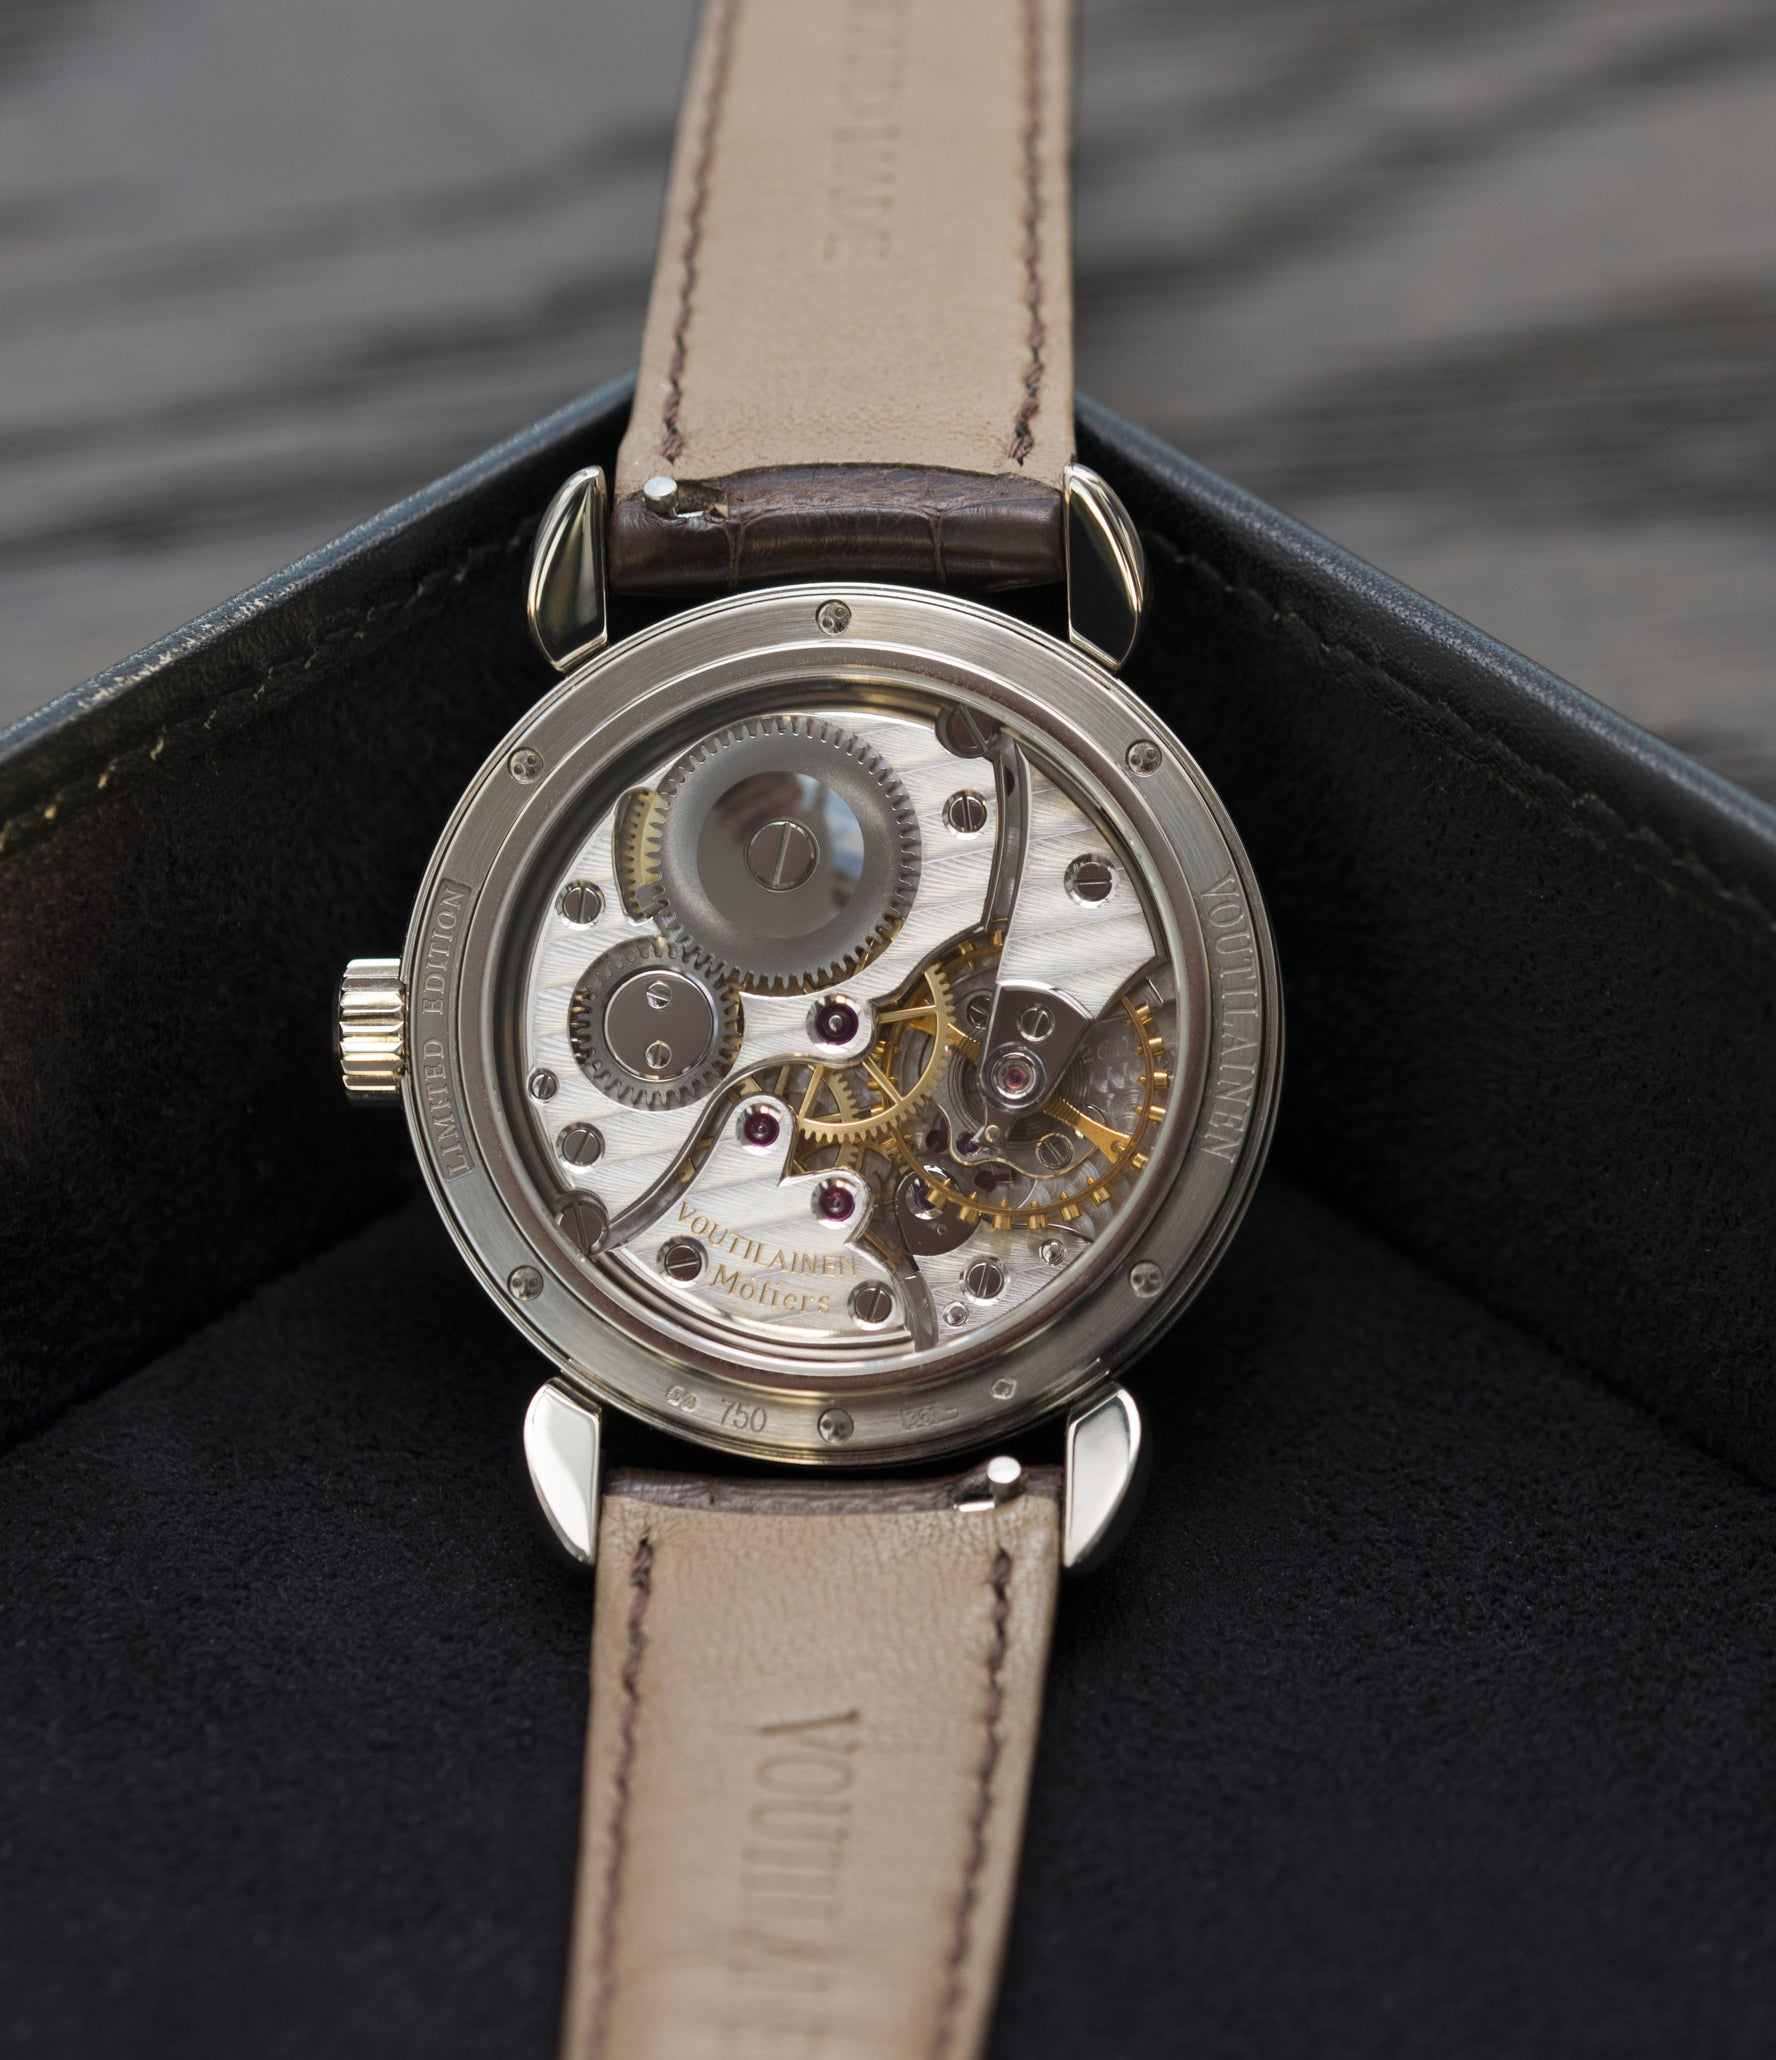 Peseux 260 Kari Voutilainen Observatoire Limited Edition rare brown dial watch online at A Collected Man London specialist endorsed seller of pre-owned independent watchmakers